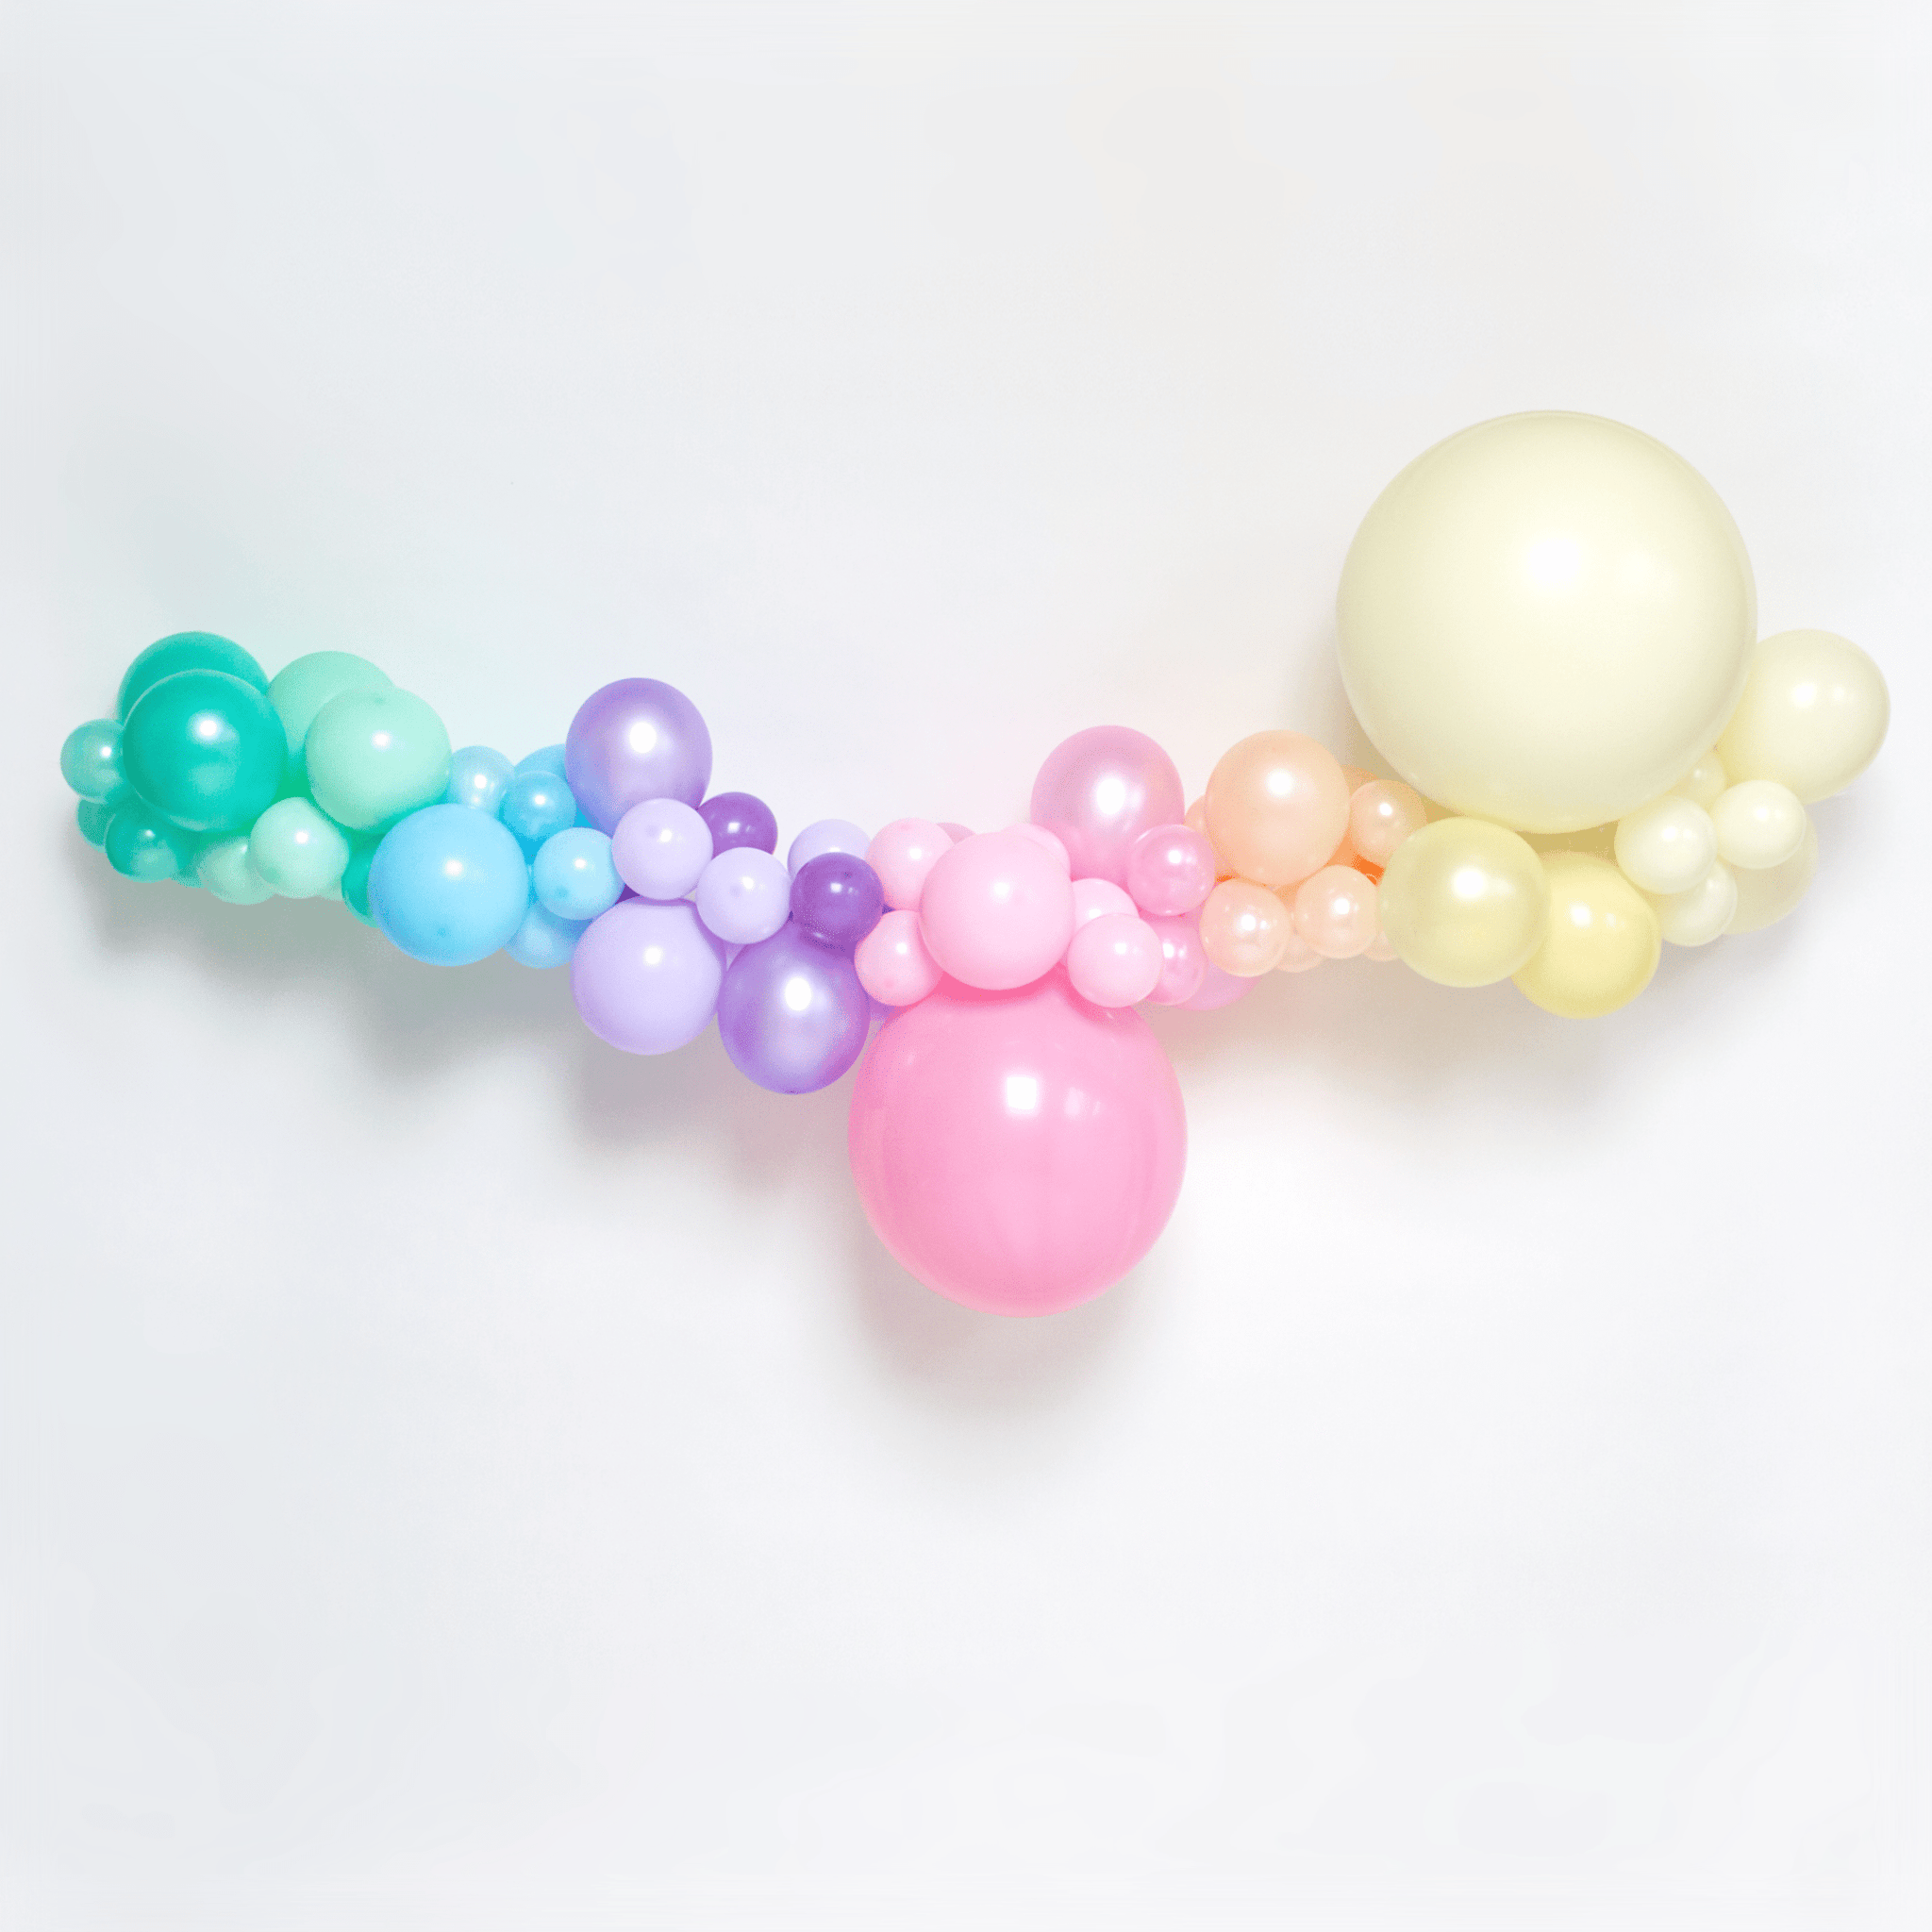 Pastel Balloon Garland Kit | Balloon Installation Kit UK